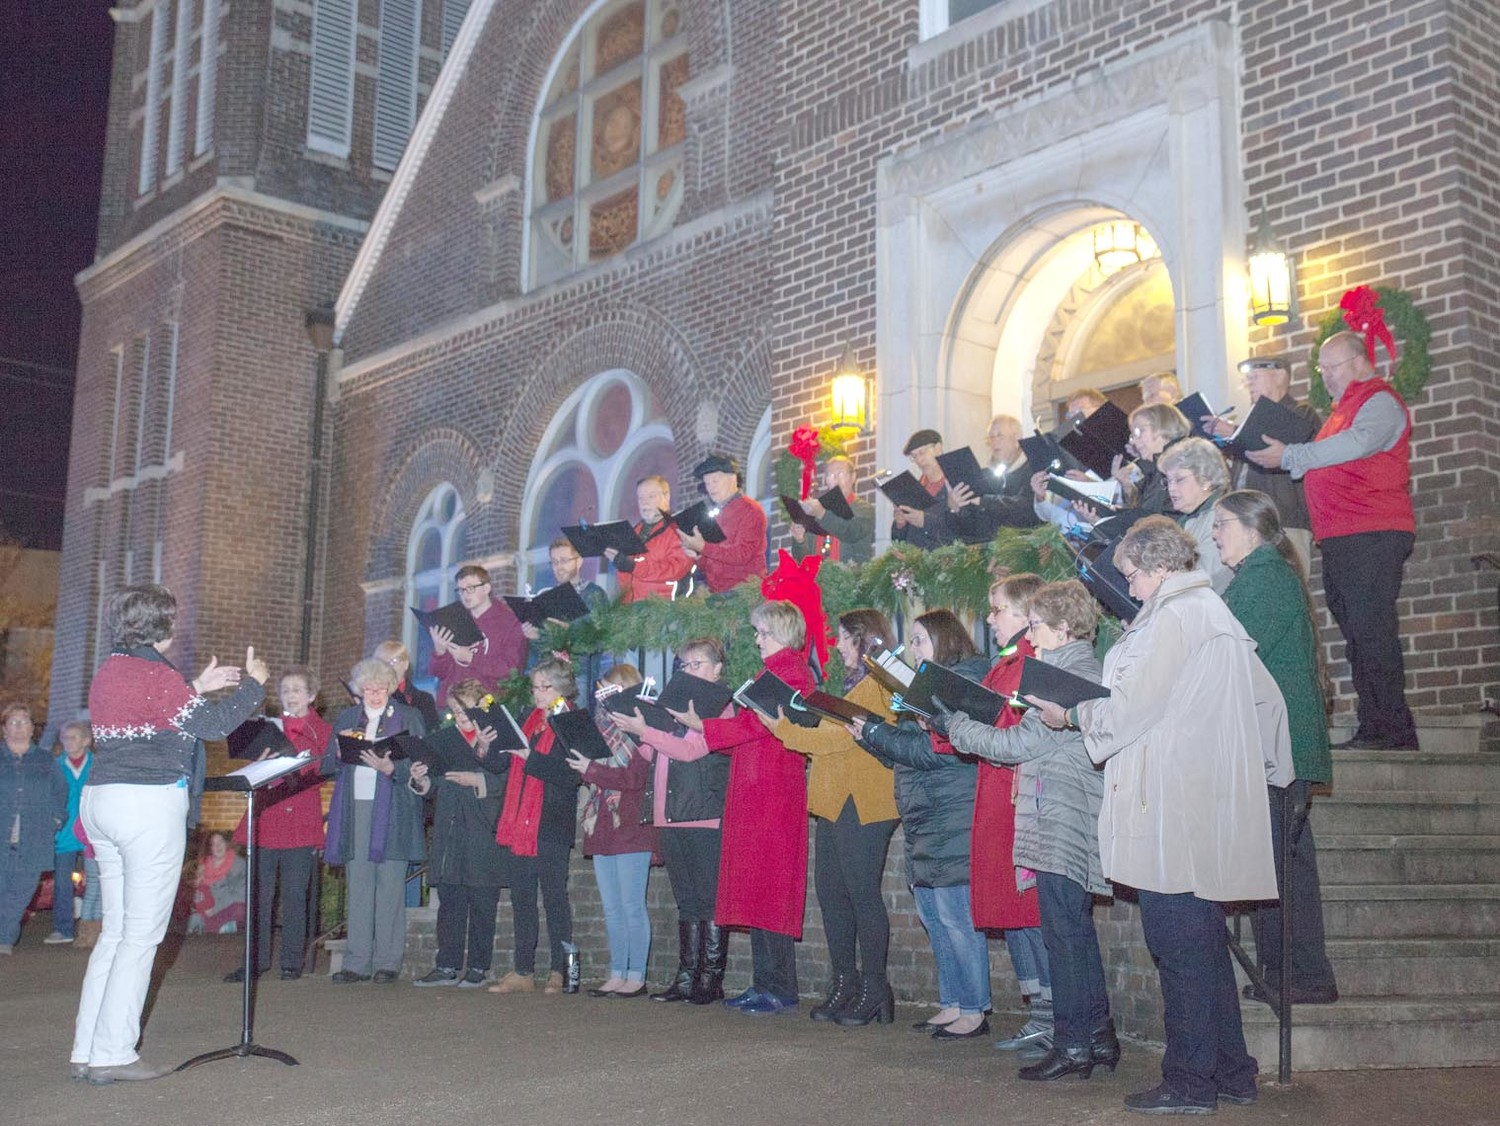 AT THE FIRST STOP on the reverse caroling tour, the Broad Street United Methodist Church choir treats the crowd to some Christmas carols.